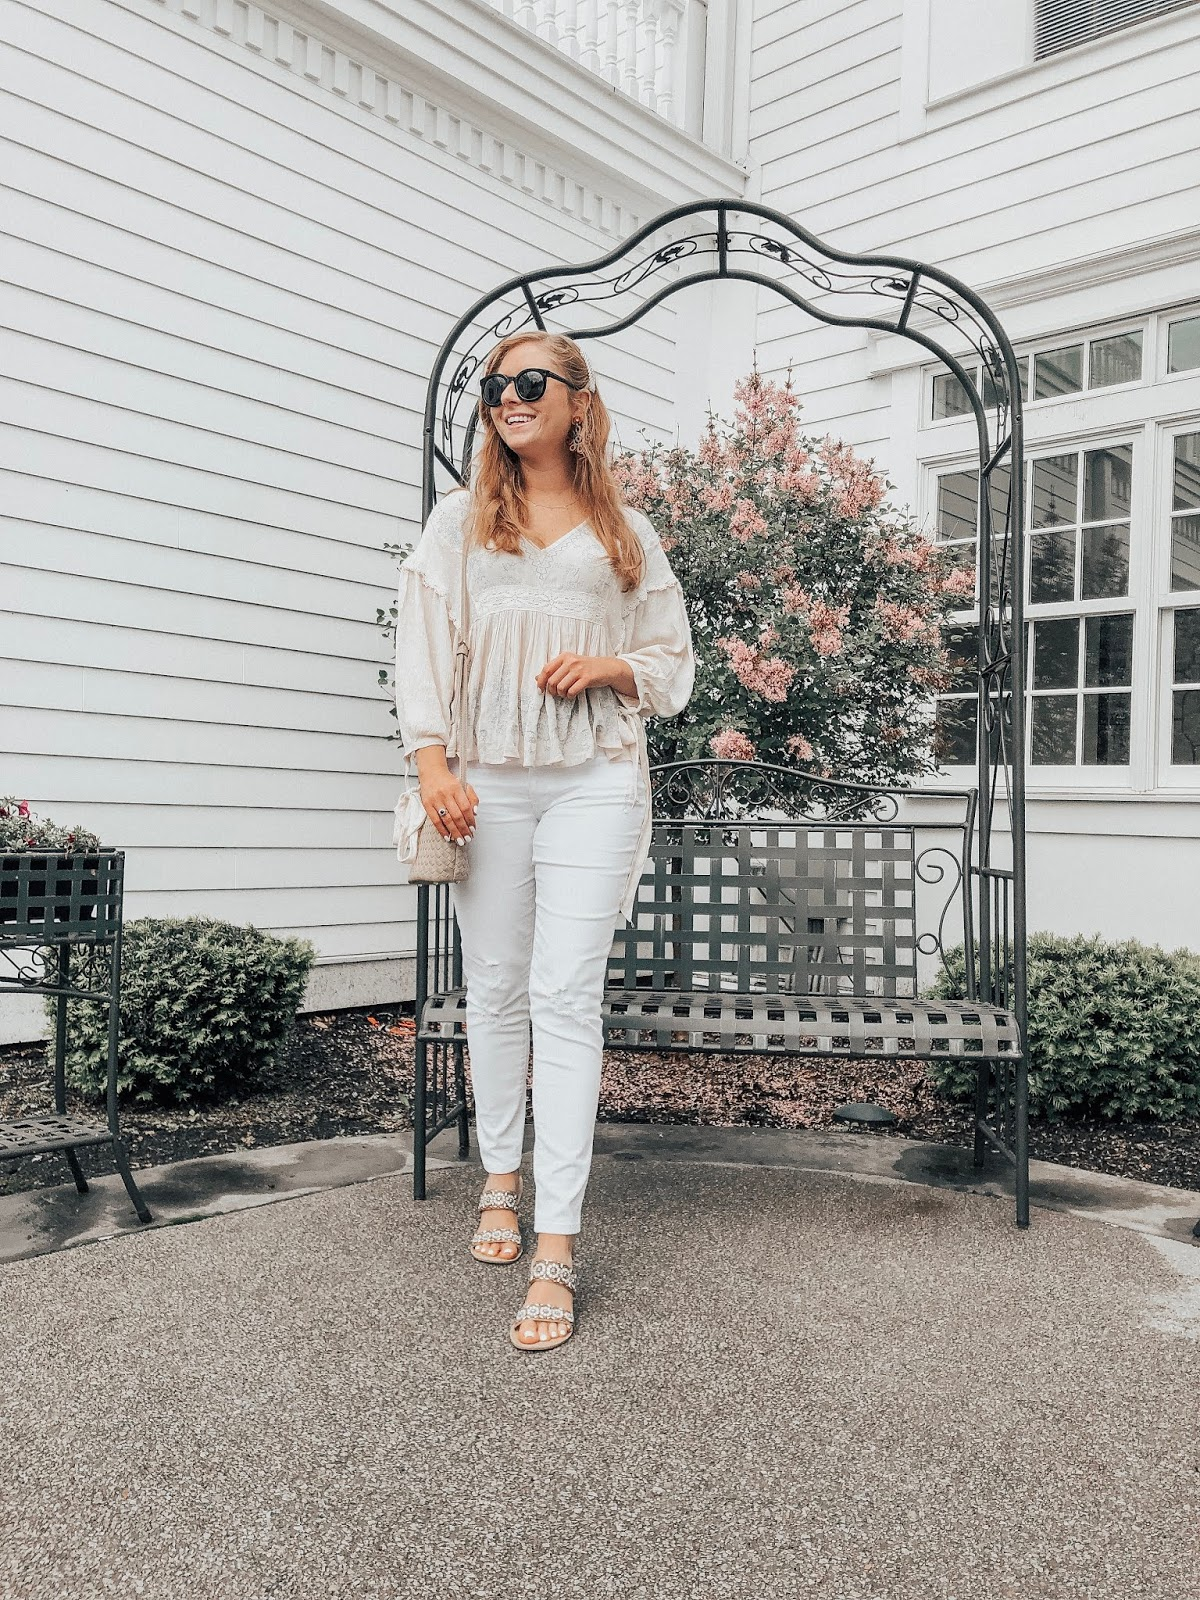 Affordable by Amanda | Easy Ways to Style White Jeans for Summer